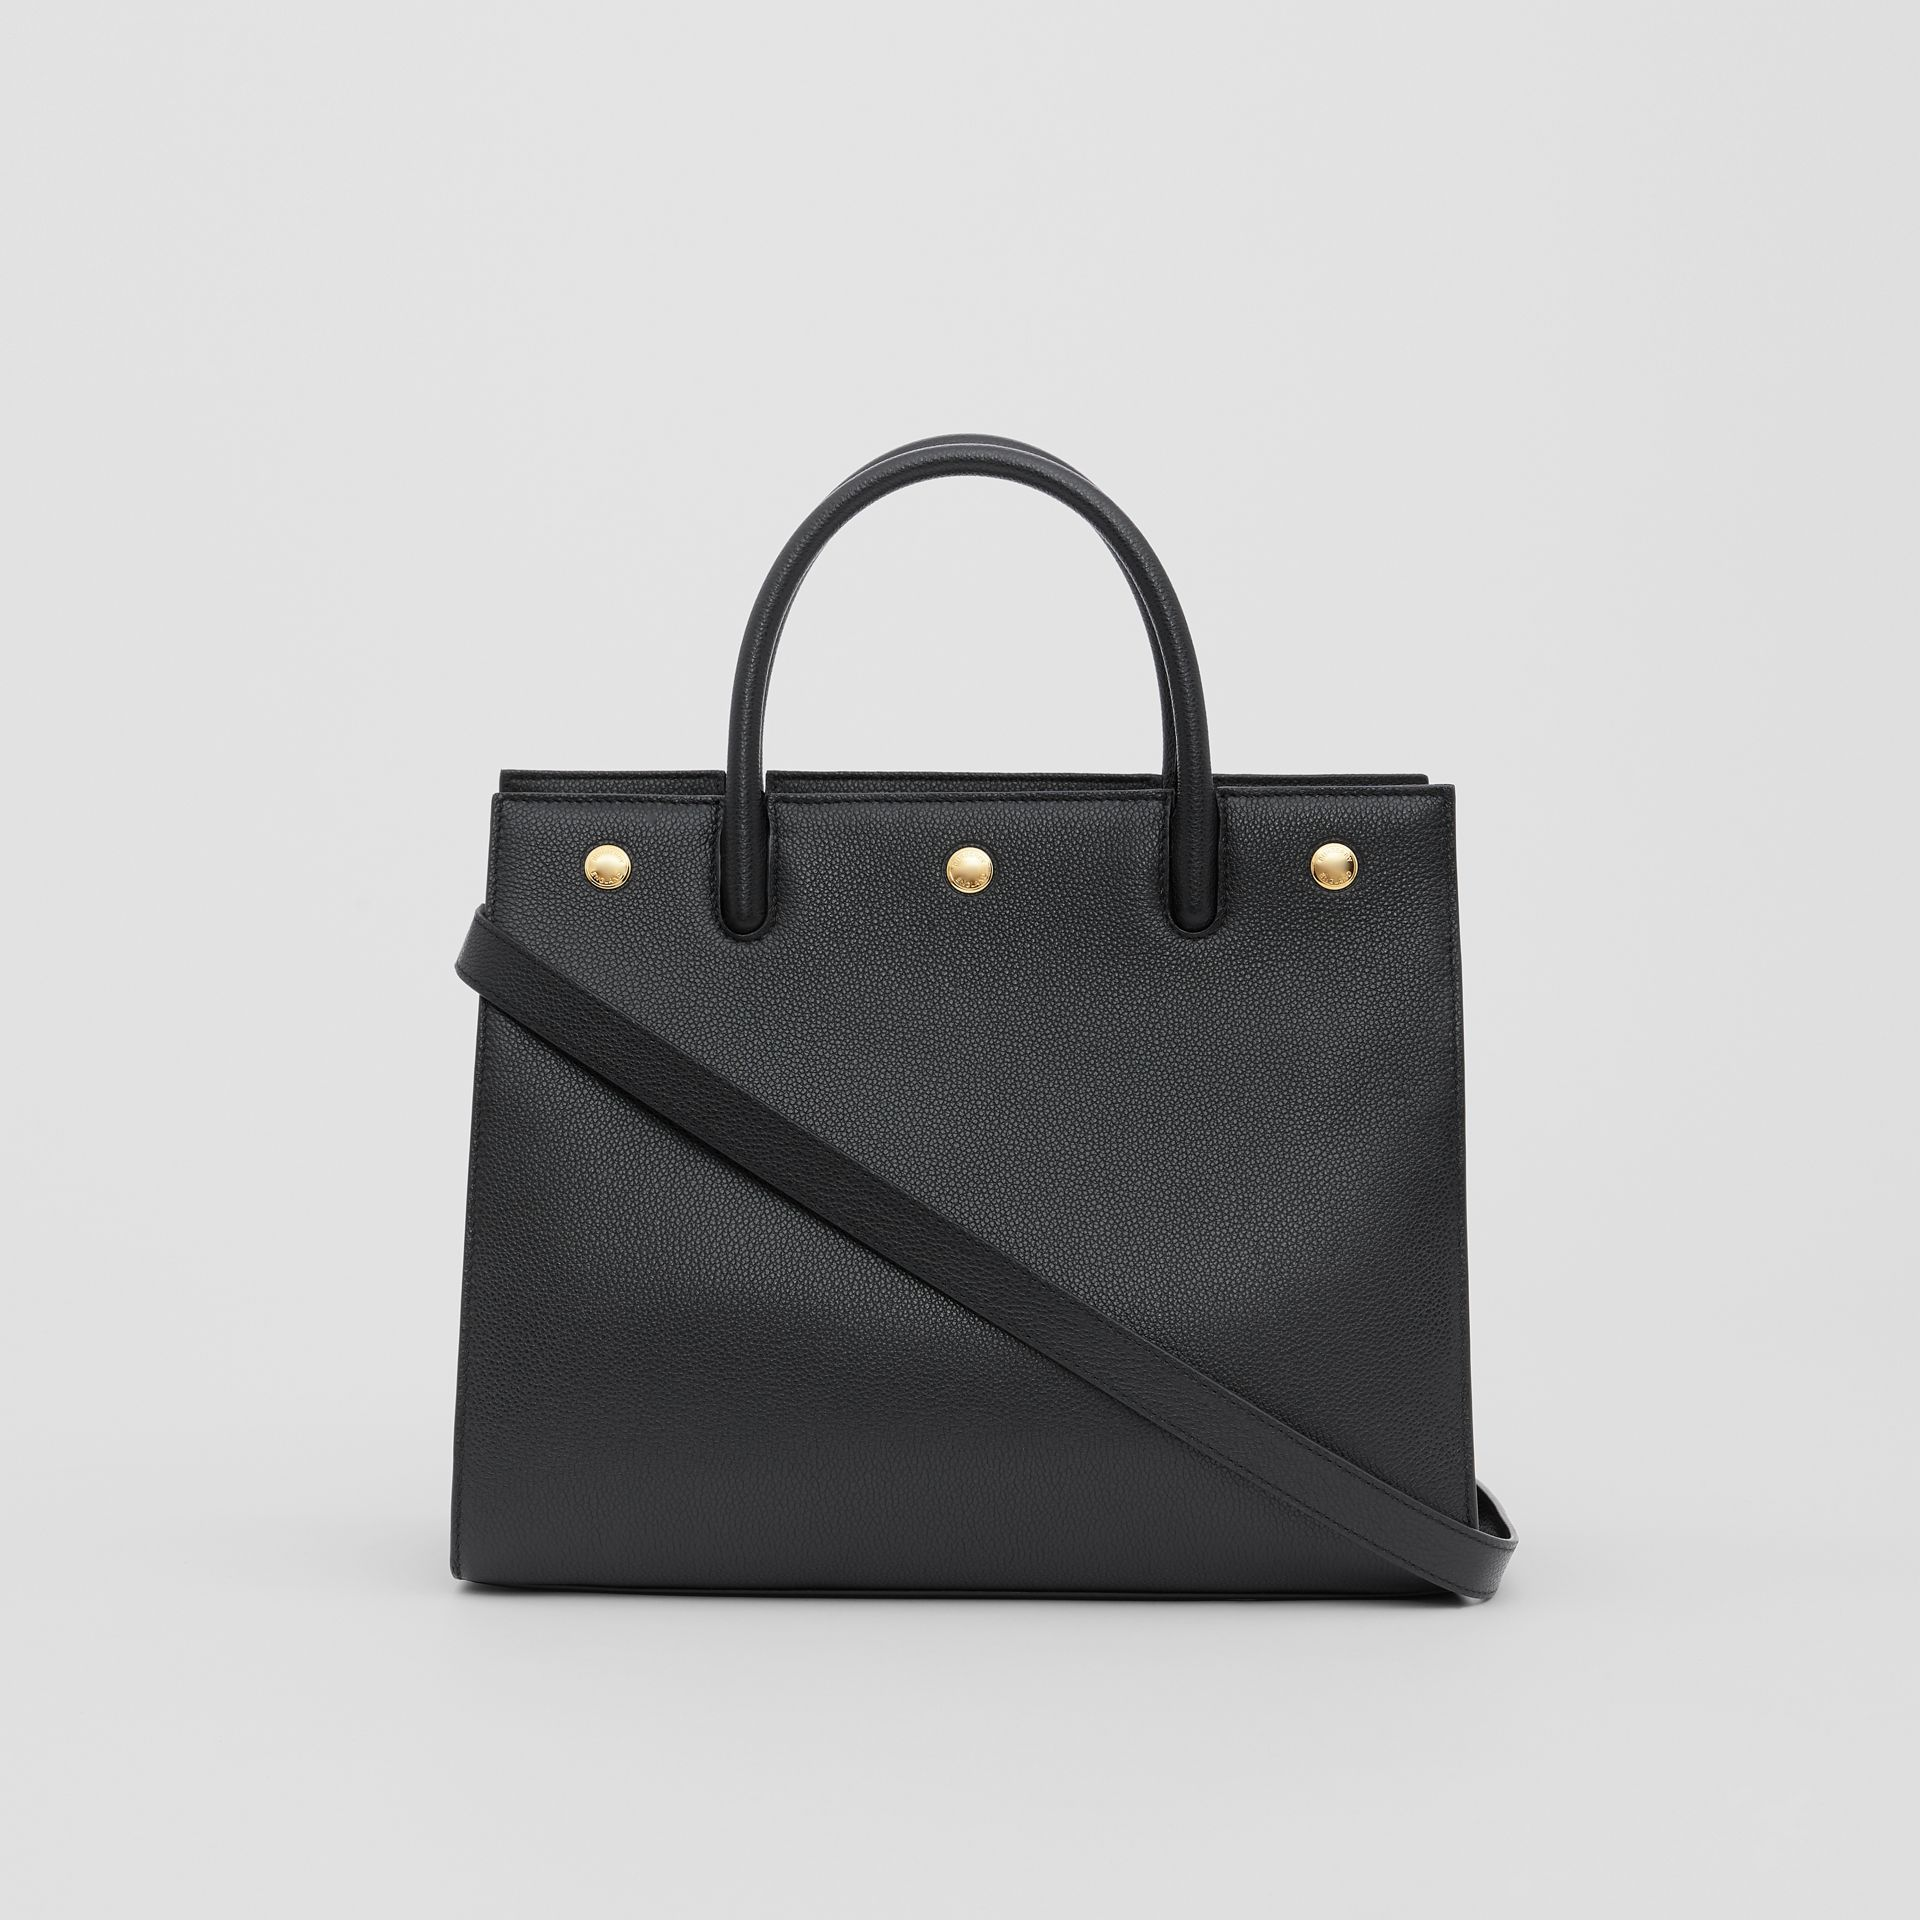 Small Leather Two-handle Title Bag in Black - Women | Burberry Canada - gallery image 7